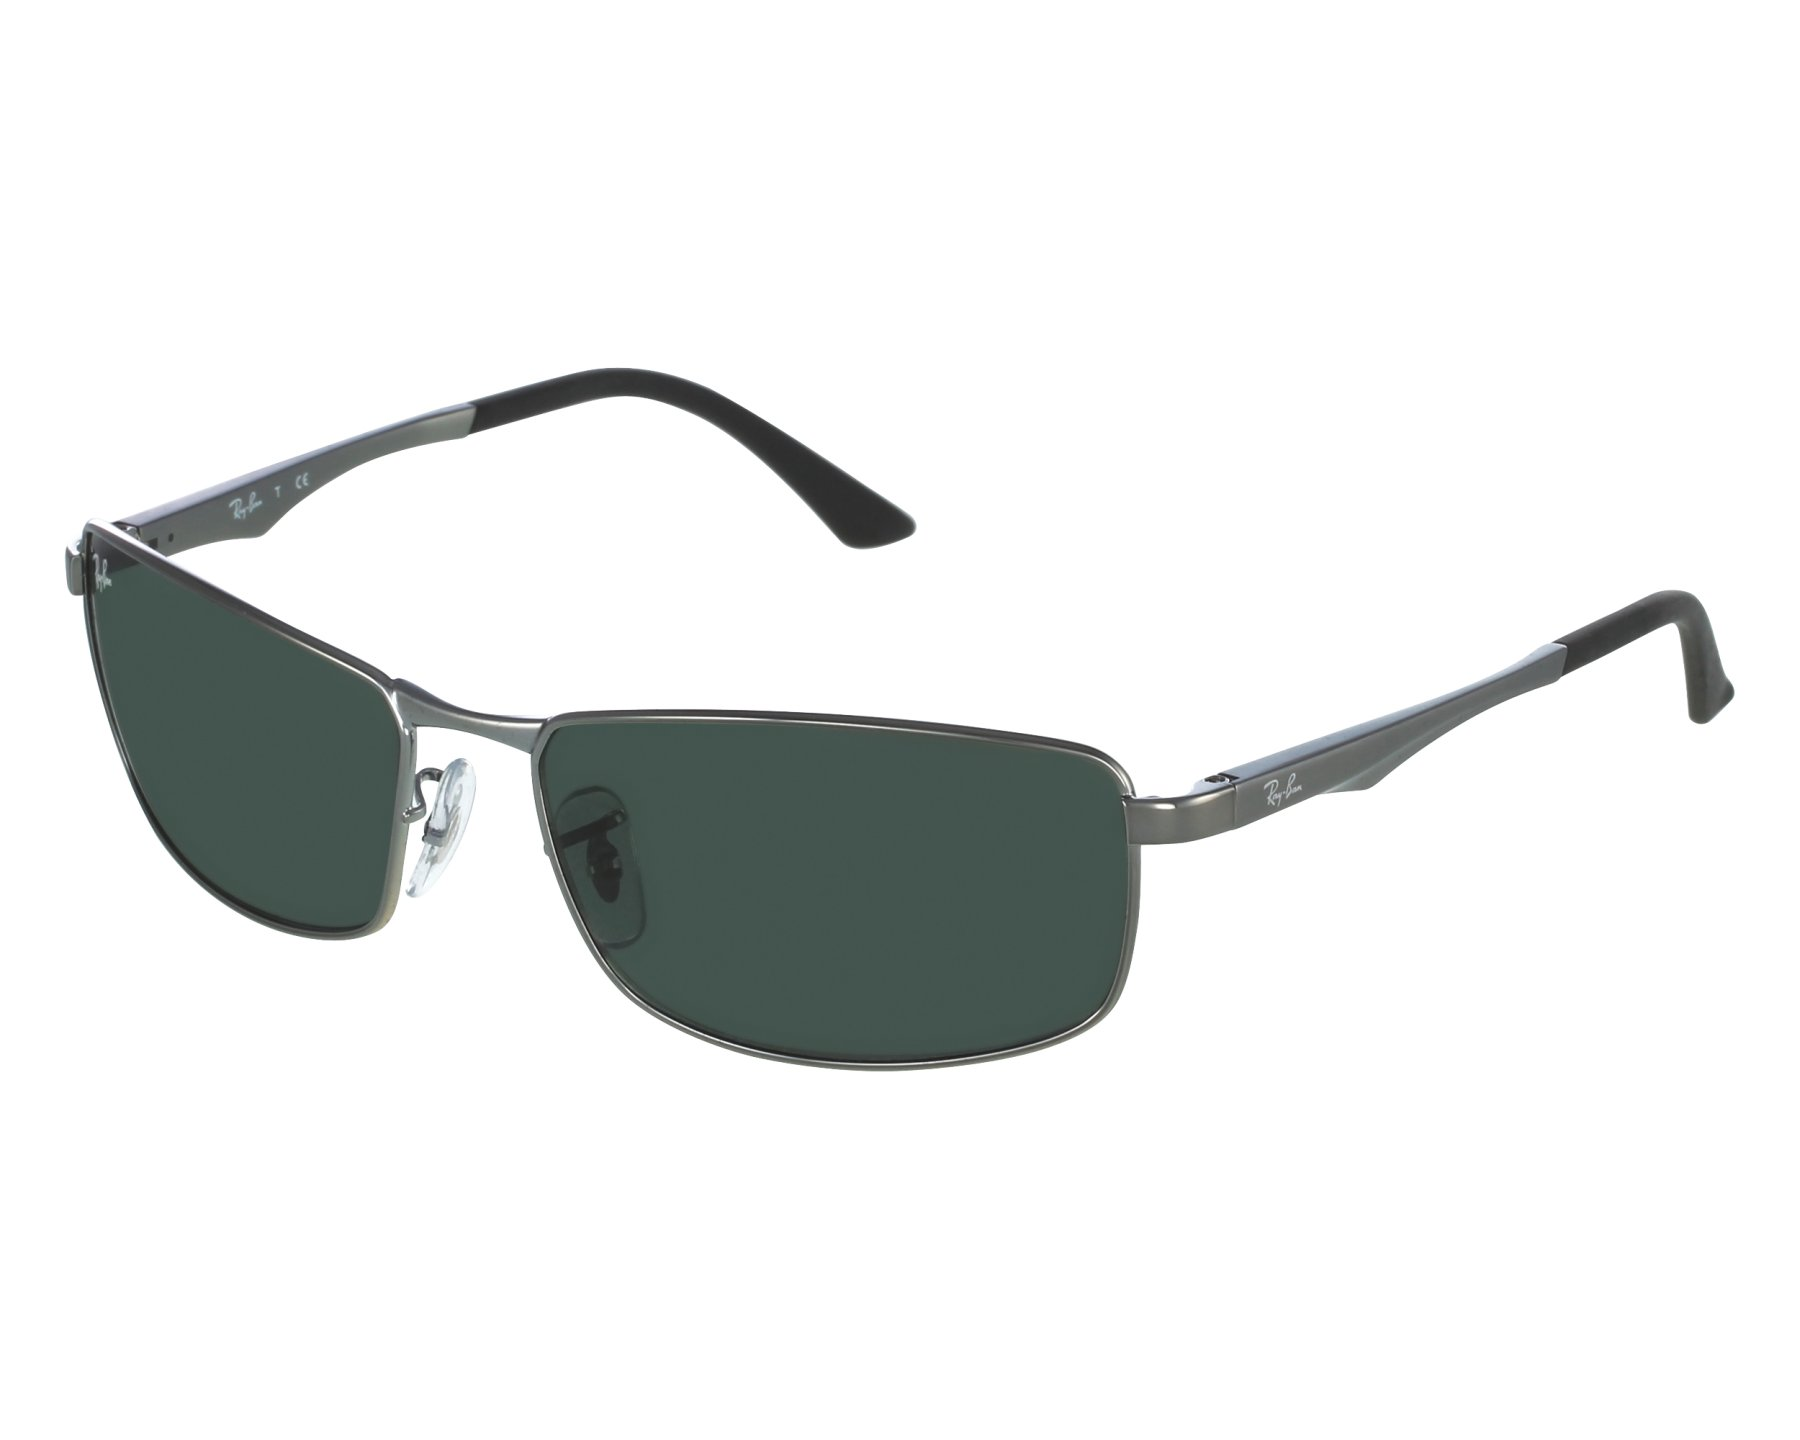 fb0fe11ed7 thumbnail Sunglasses Ray-Ban RB-3498 004 71 - Gun front view